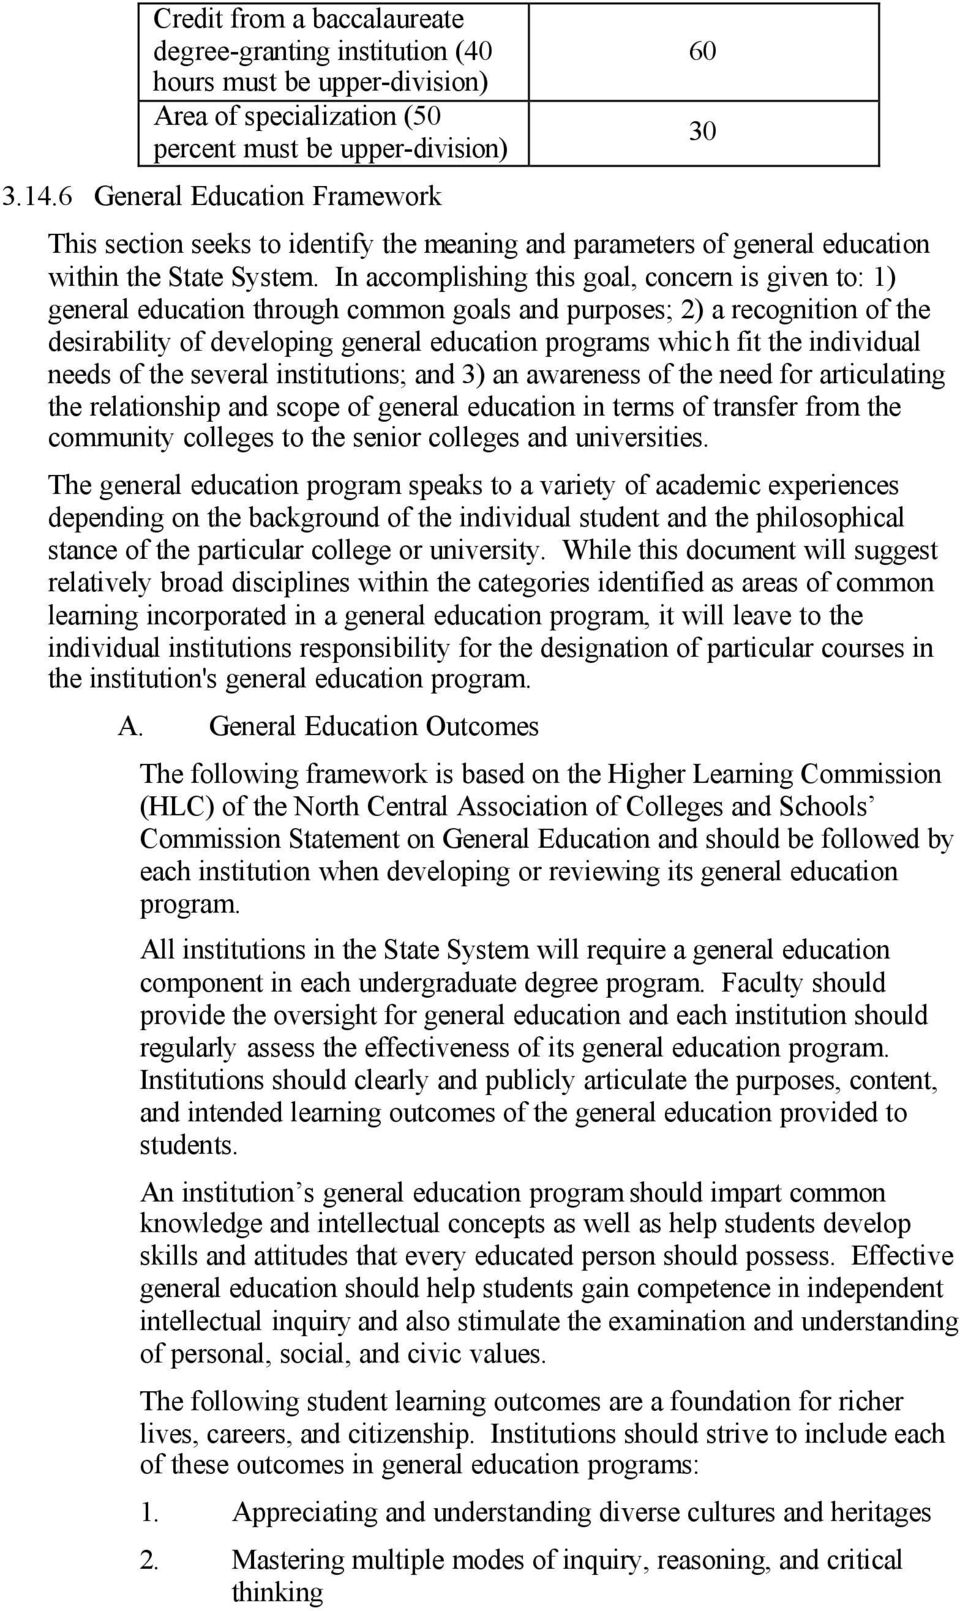 In accomplishing this goal, concern is given to: 1) general education through common goals and purposes; 2) a recognition of the desirability of developing general education programs whic h fit the